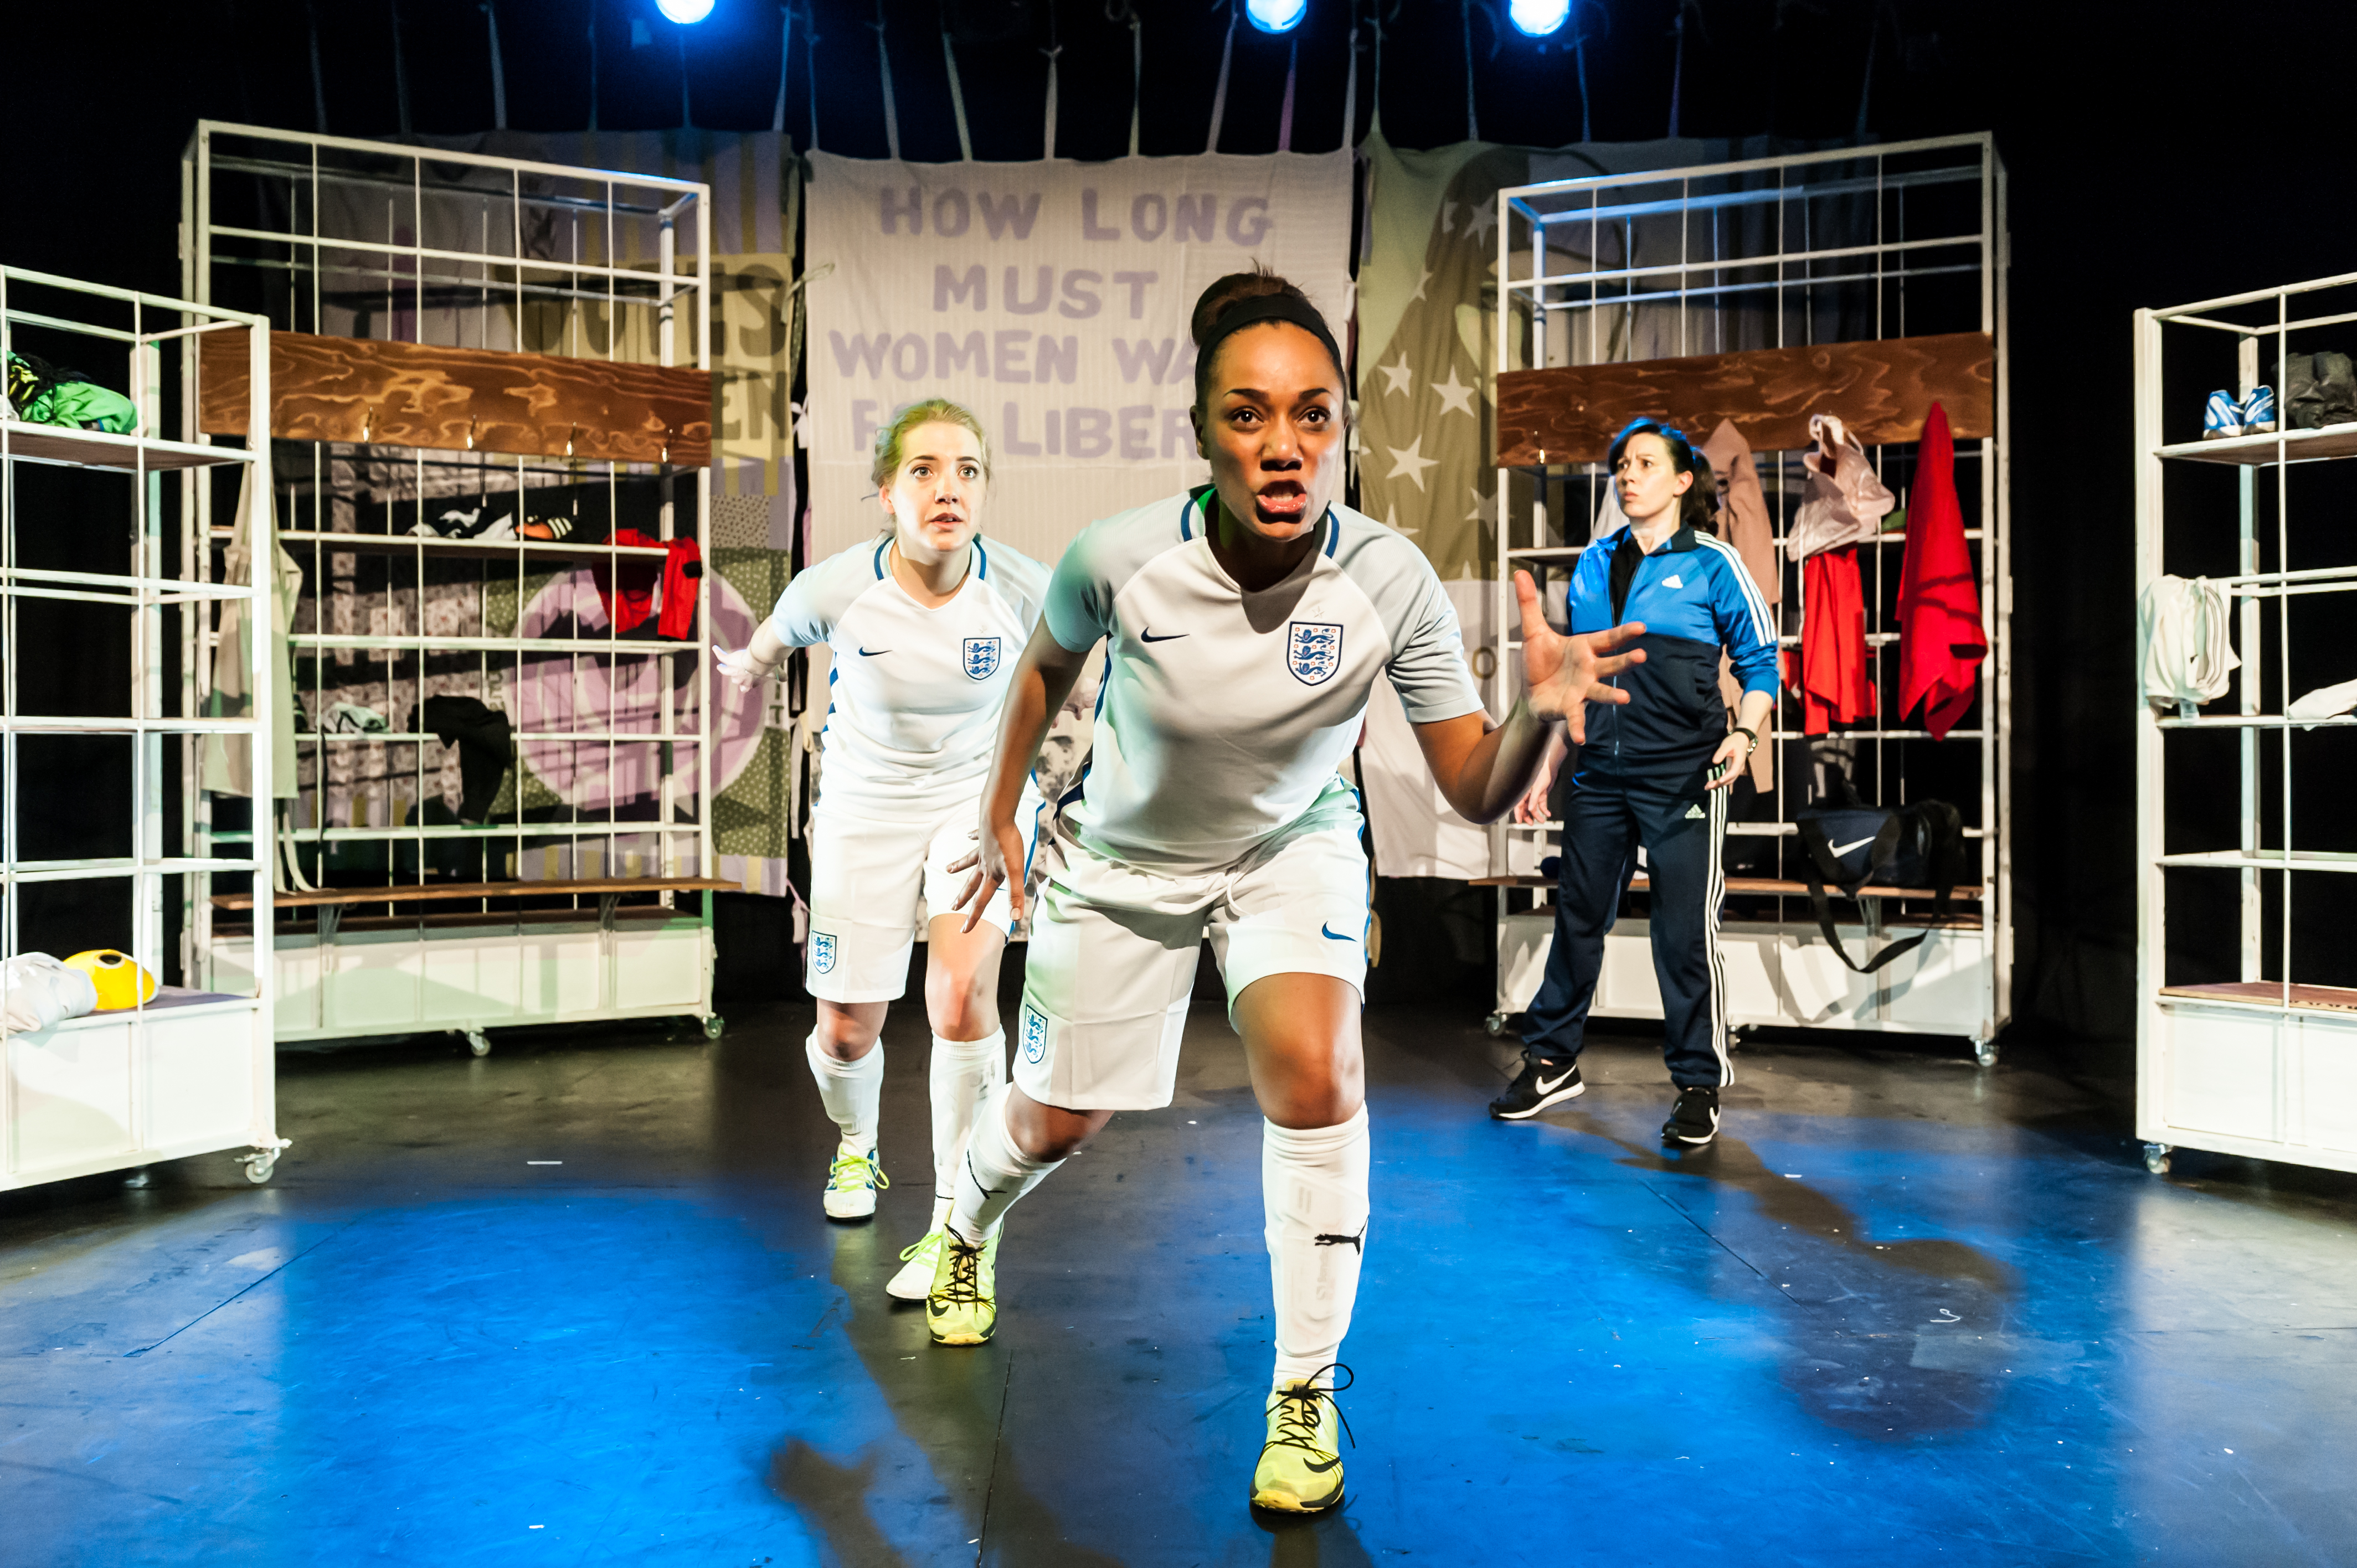 Offside at Pleasance Courtyard, as part of the Edinburgh Fringe 2017.